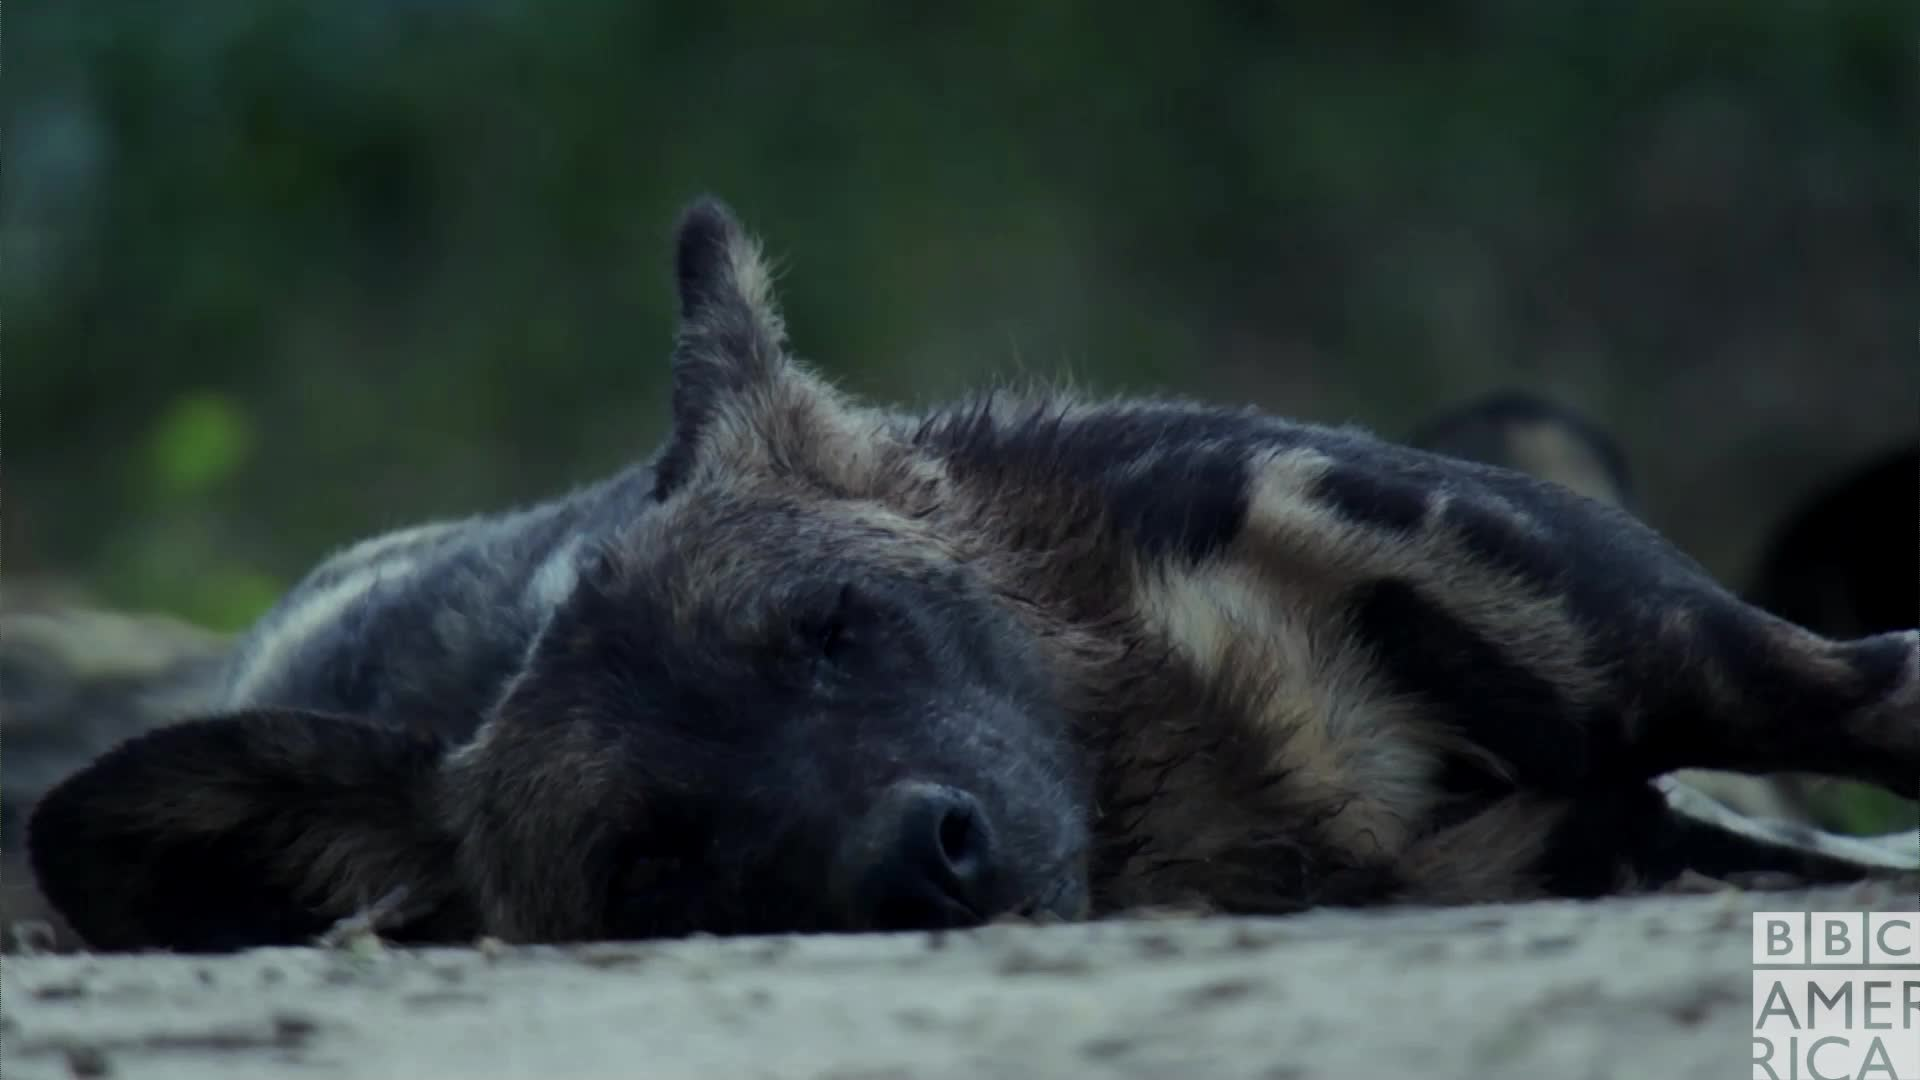 animal, animals, bbc america, bbc america dynasties, bbc america: dynasties, dynasties, lazy, monday, mondays, painted wolf, painted wolves, sleepy, tired, wolf, wolves, zzz, Dynasties Wolf Awakens GIFs